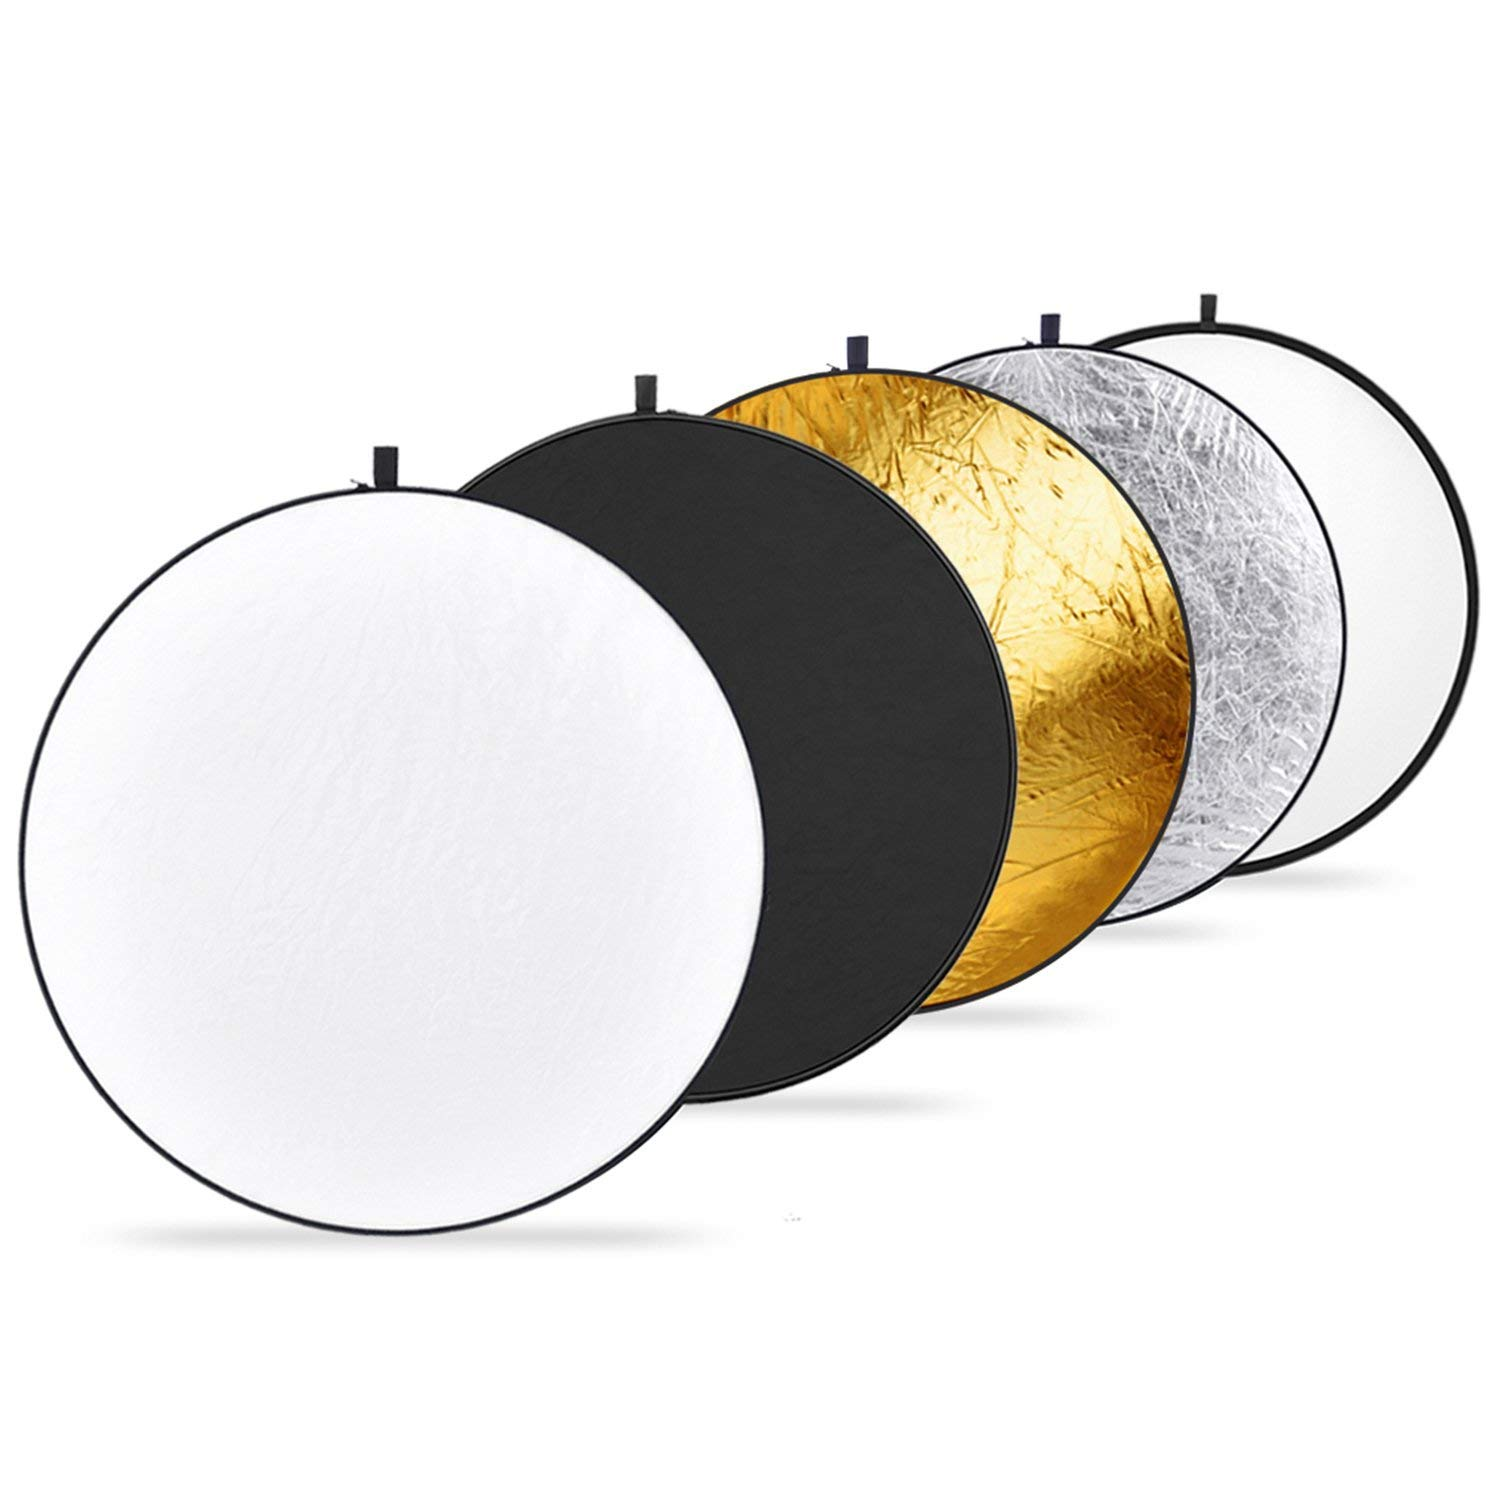 Collapsible-Multi-Disc-Light-Reflector-with-Bag